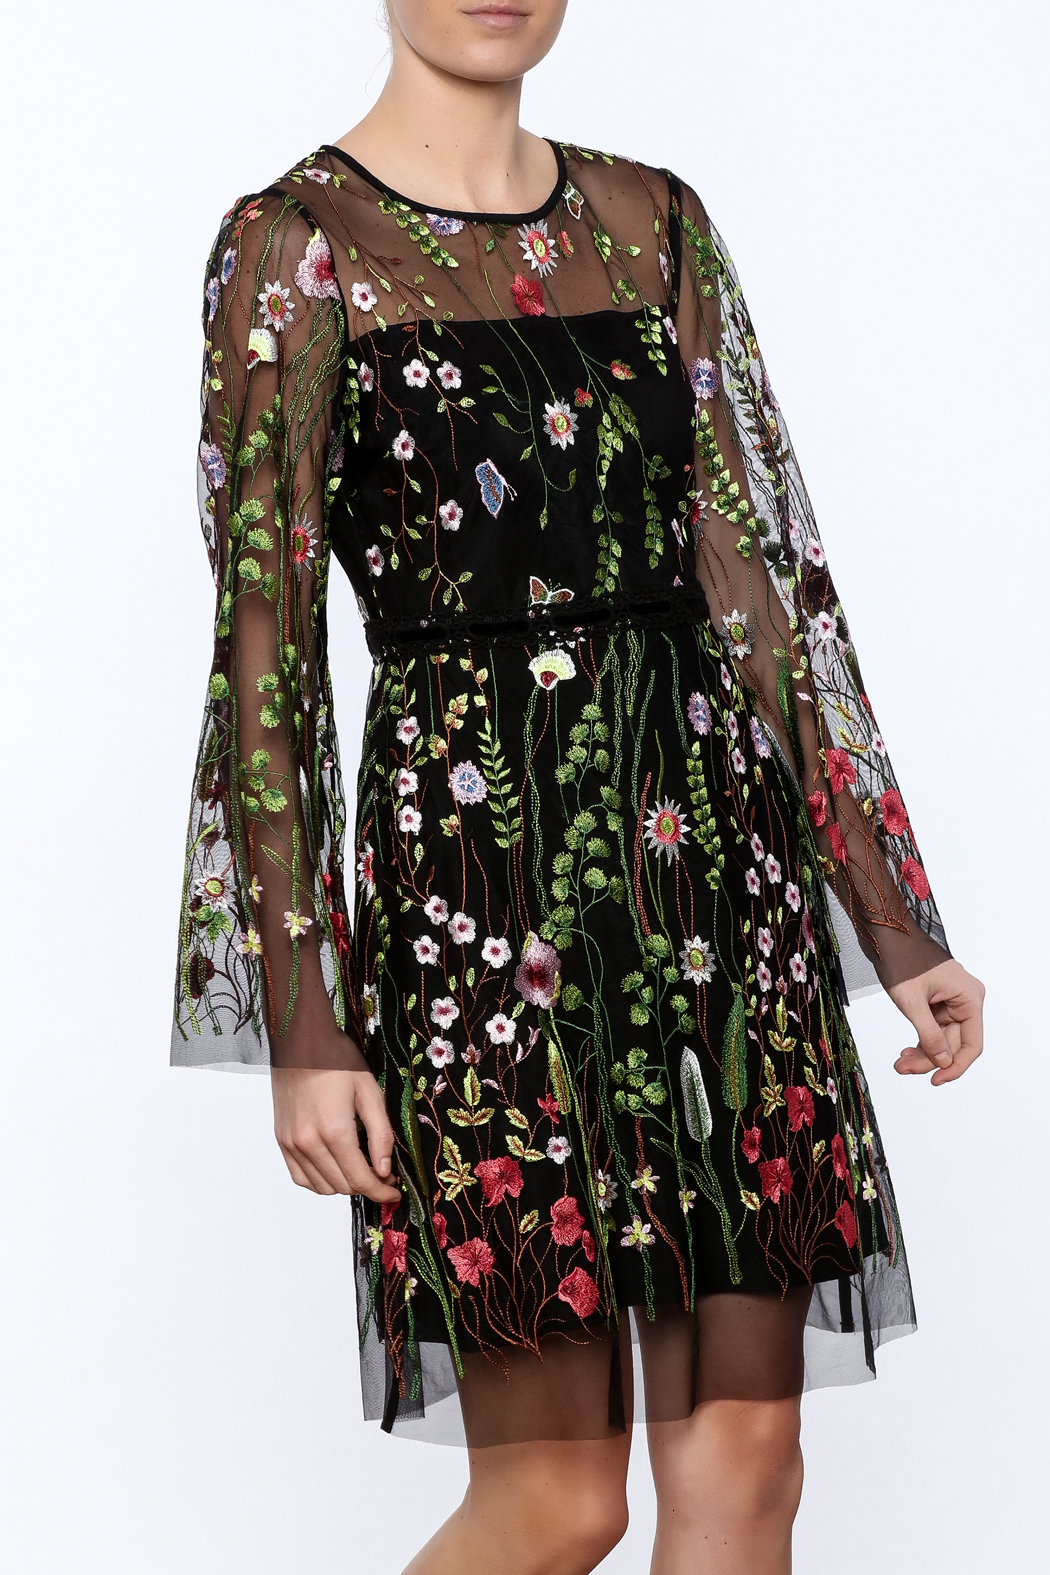 Hale bob sheer sleeved embroidered floral dress from idaho